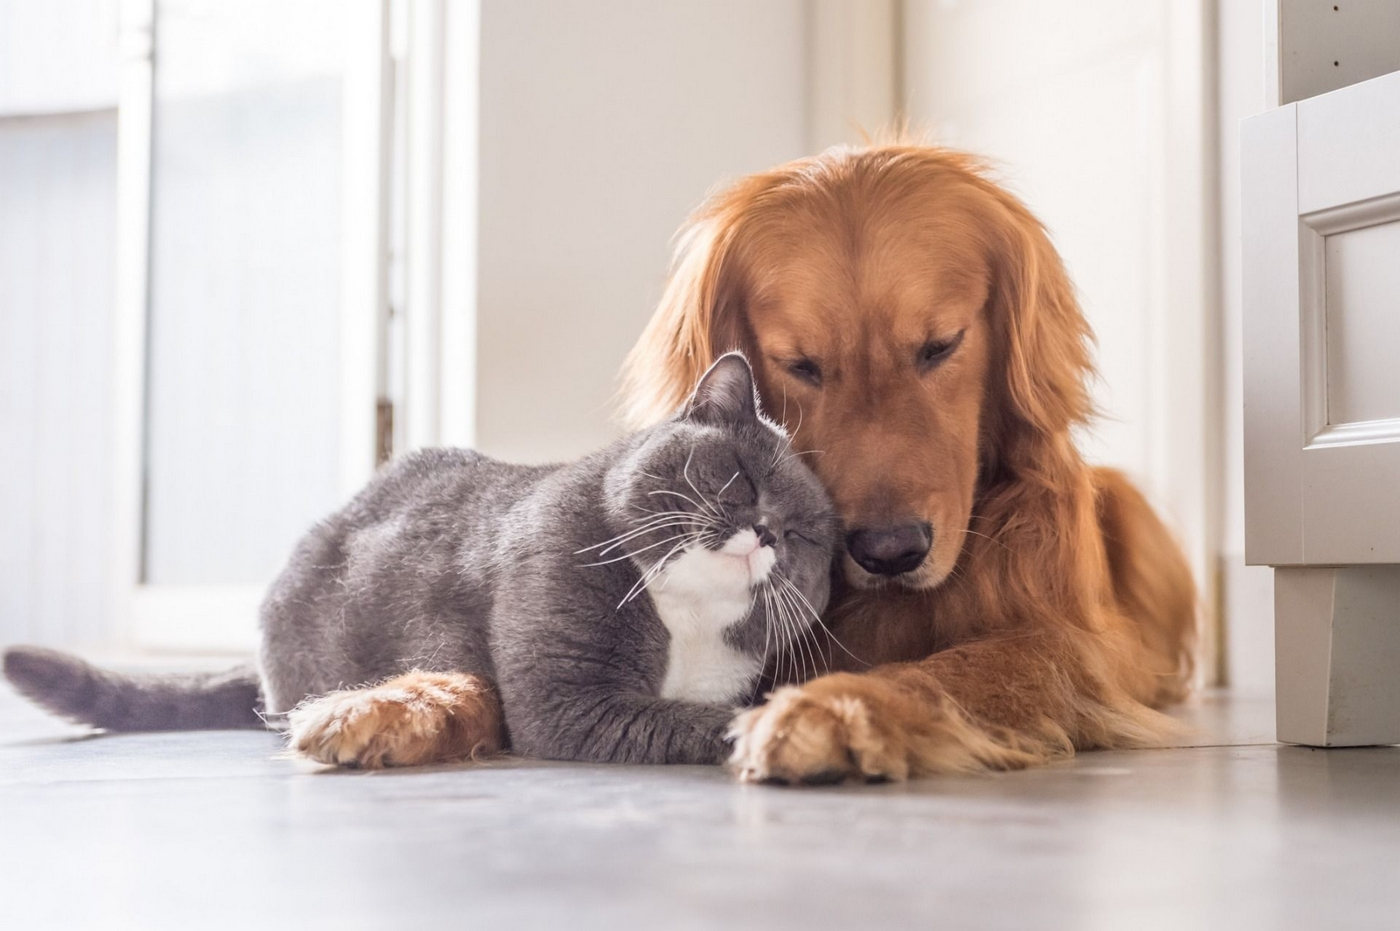 Cat and dog laying together on ground